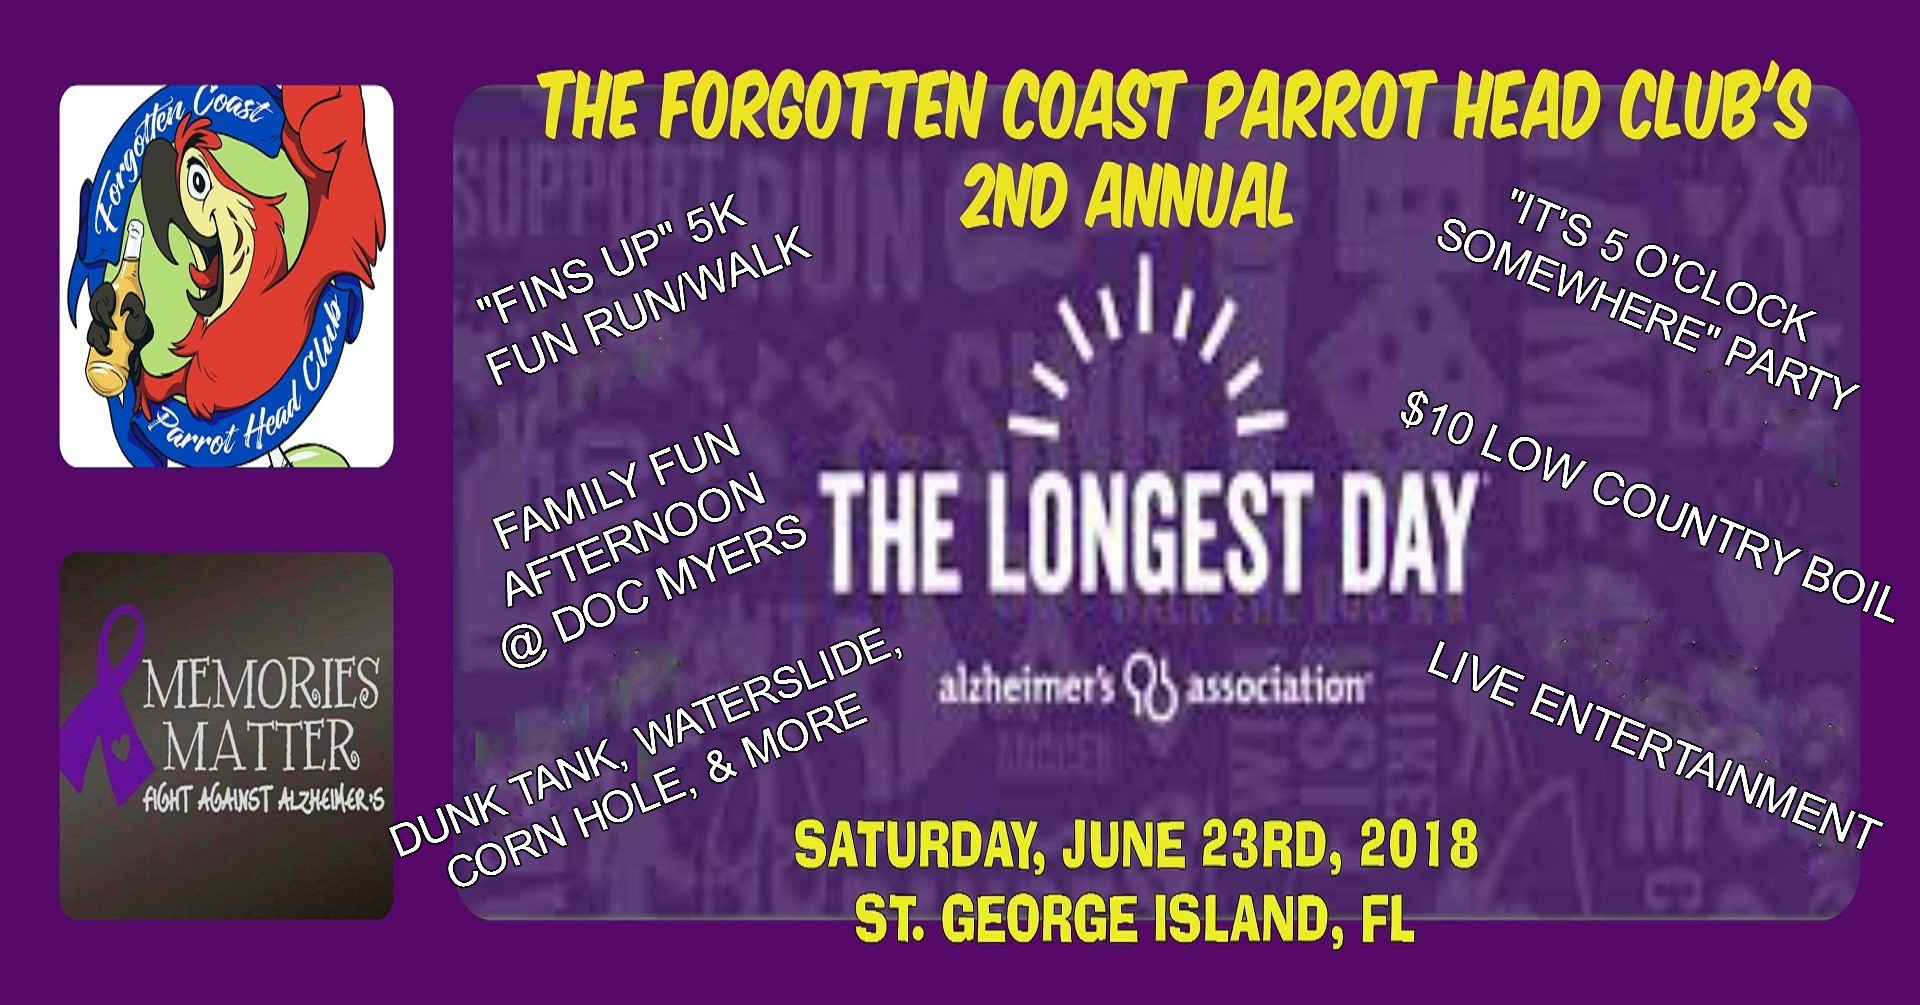 The Forgotten Coast Parrot Head Club's 2nd Annual - The